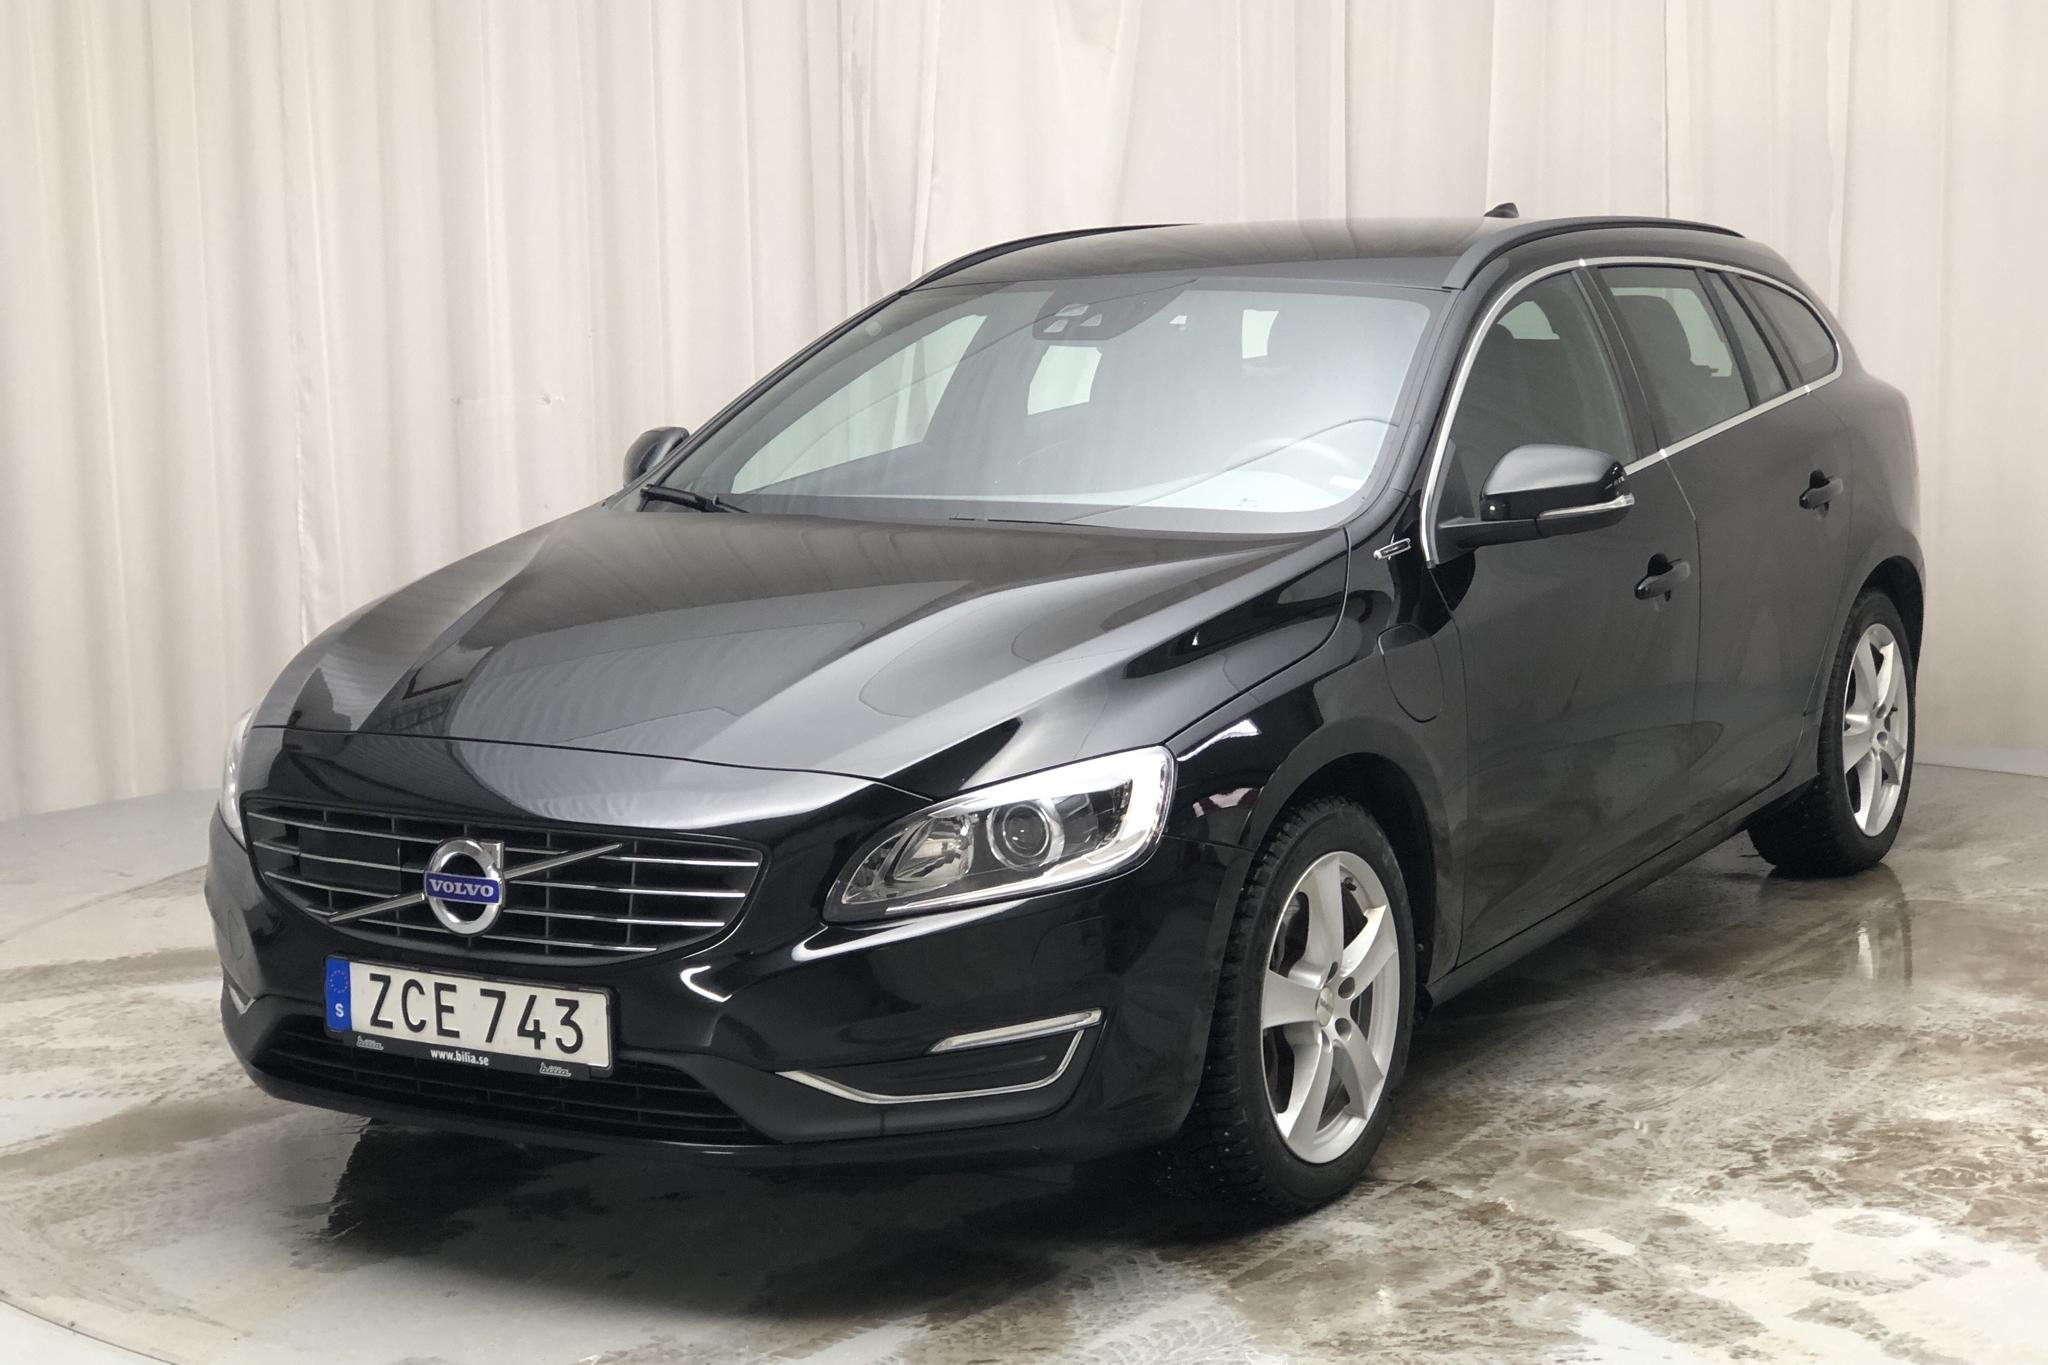 Volvo V60 D5 AWD Twin Engine (163hk) - 78 840 km - Automatic - black - 2018